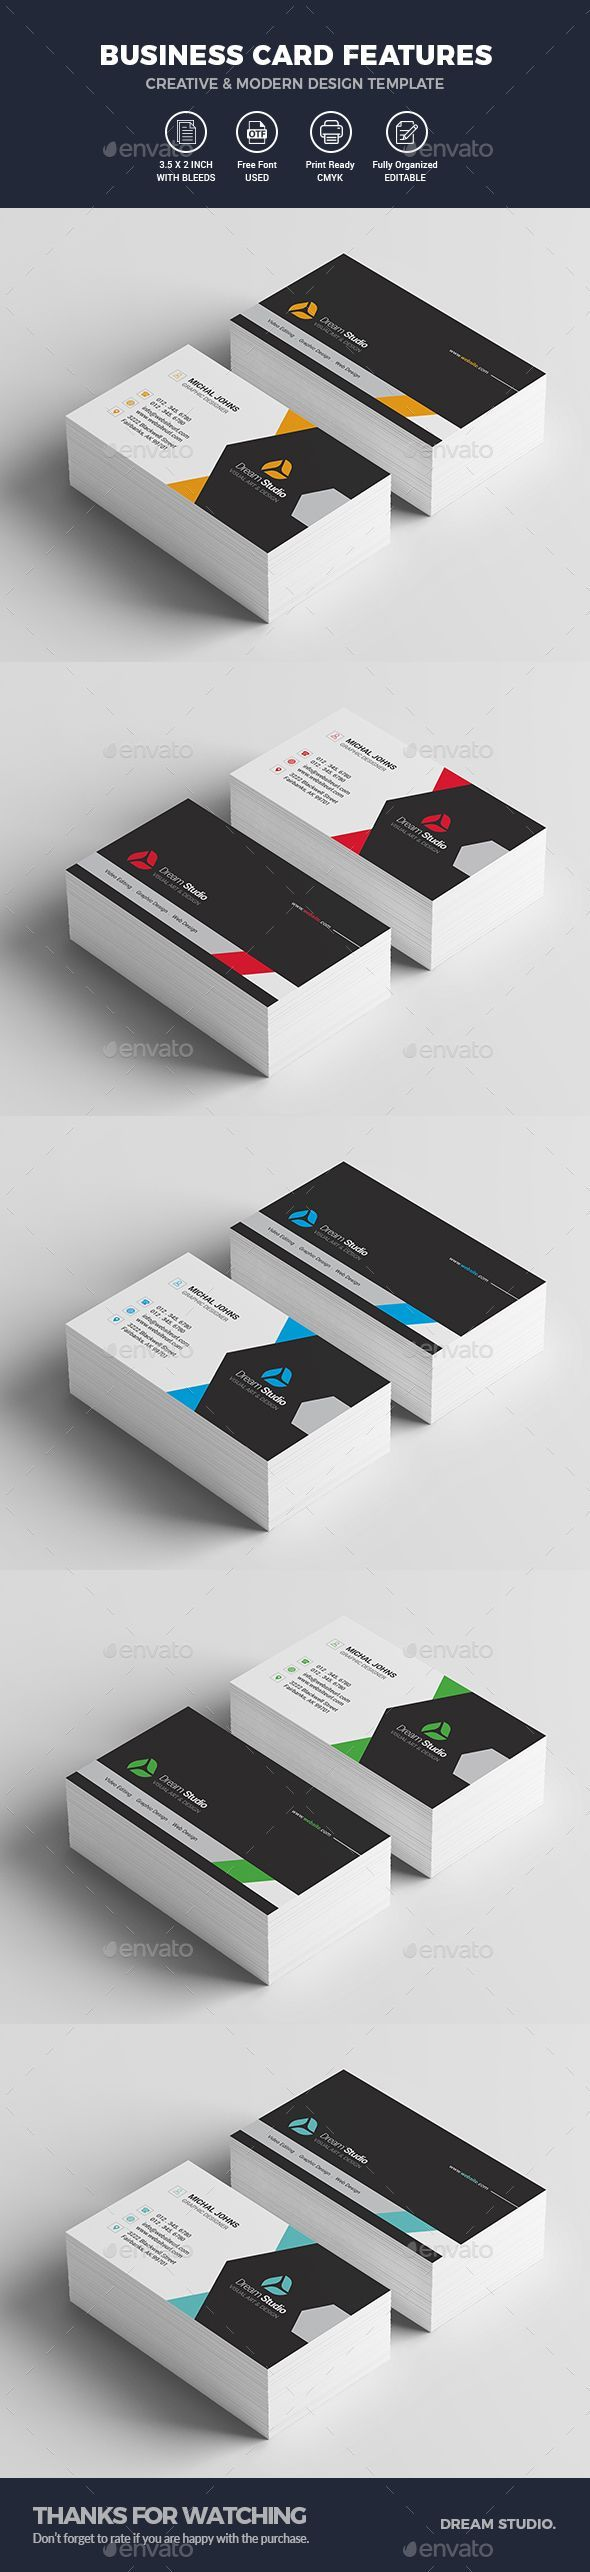 Modern #Business #Card Template - Business Cards Print Templates Download here: https://graphicriver.net/item/modern-business-card-template/19885905?ref=alena994